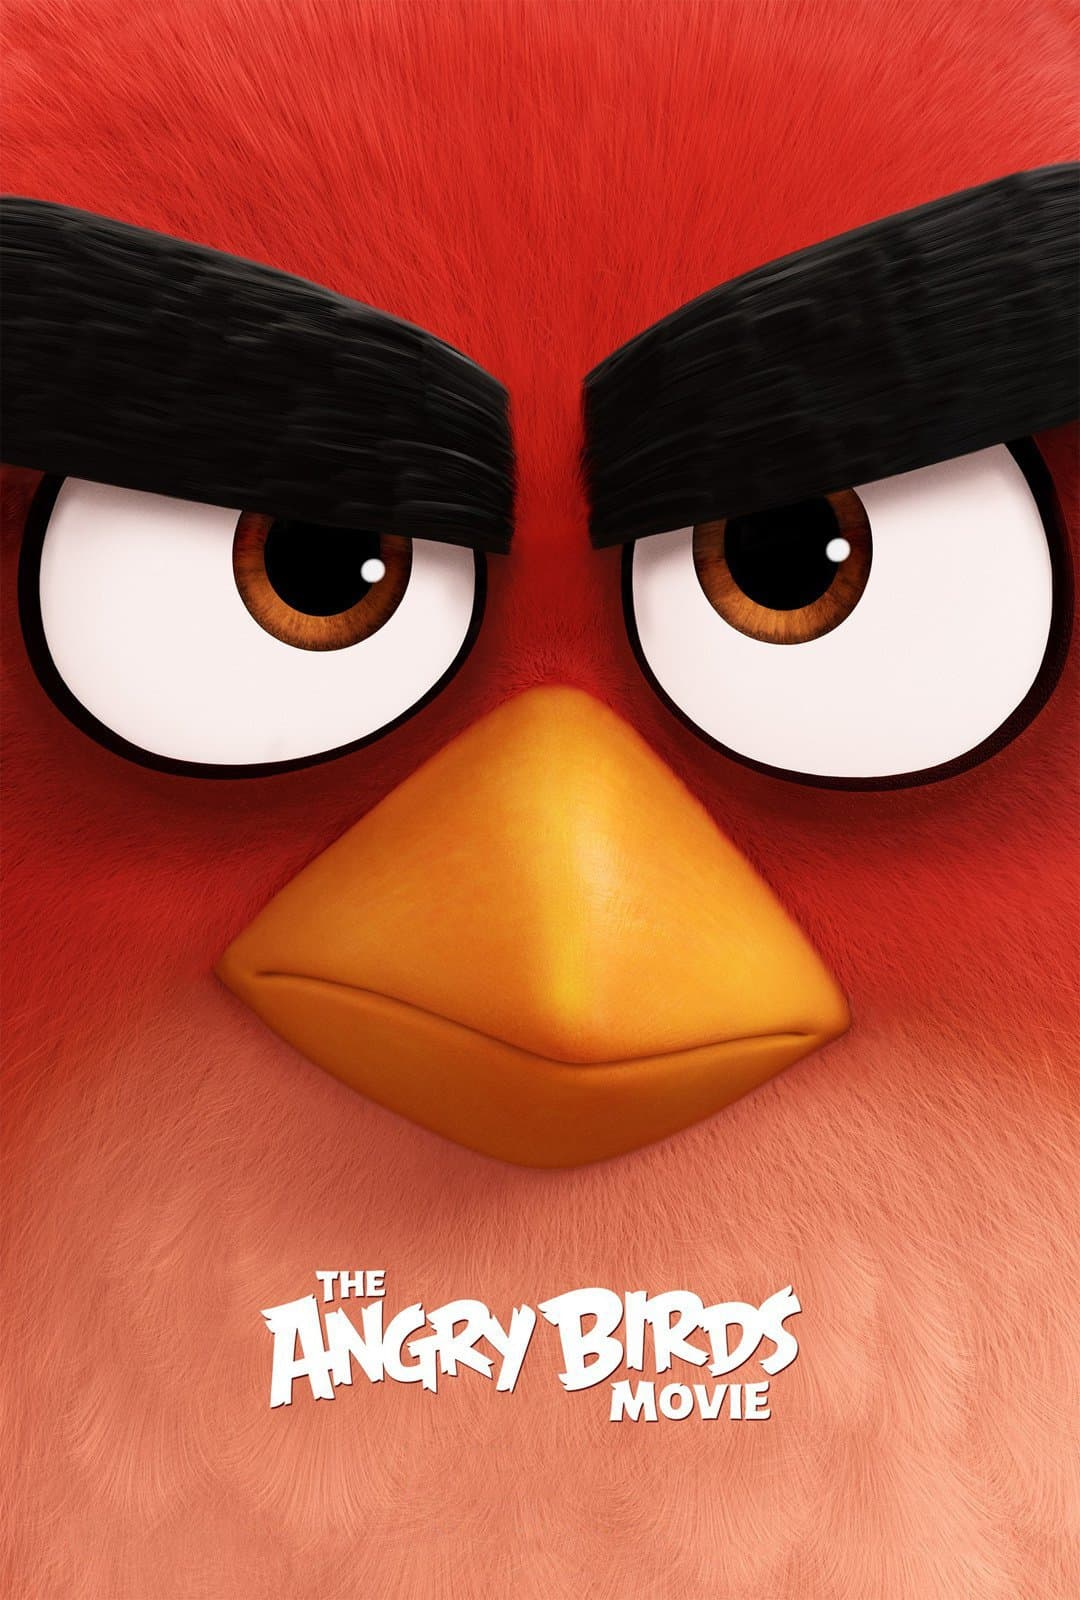 The Angry Birds Movie, 2016